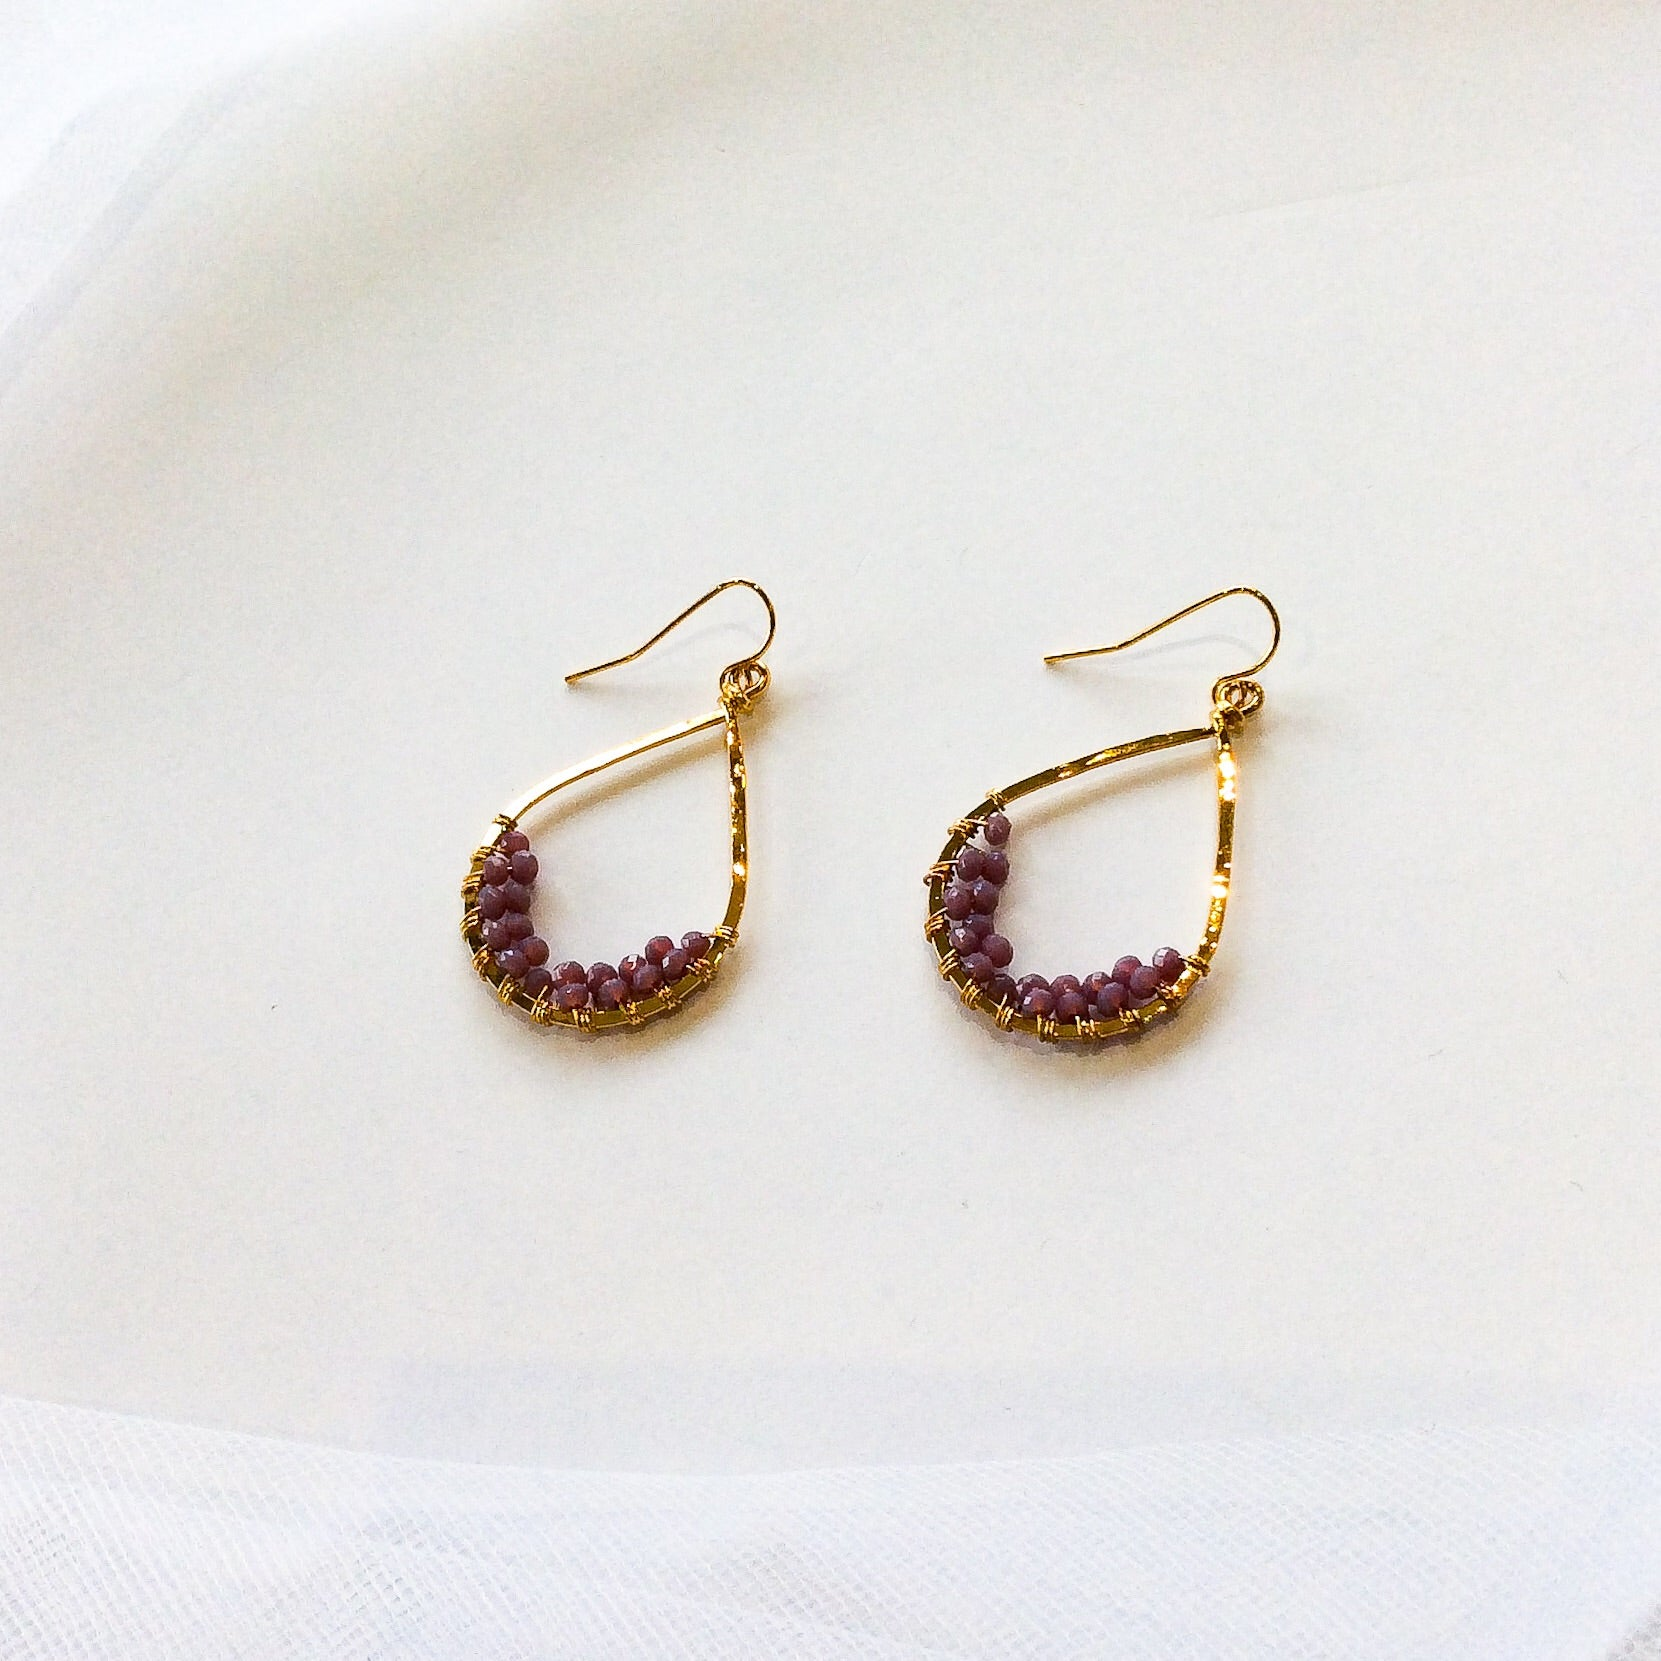 hammered gold plated tear drop earrings with light purple-pink beads wired onto the lower, inner half